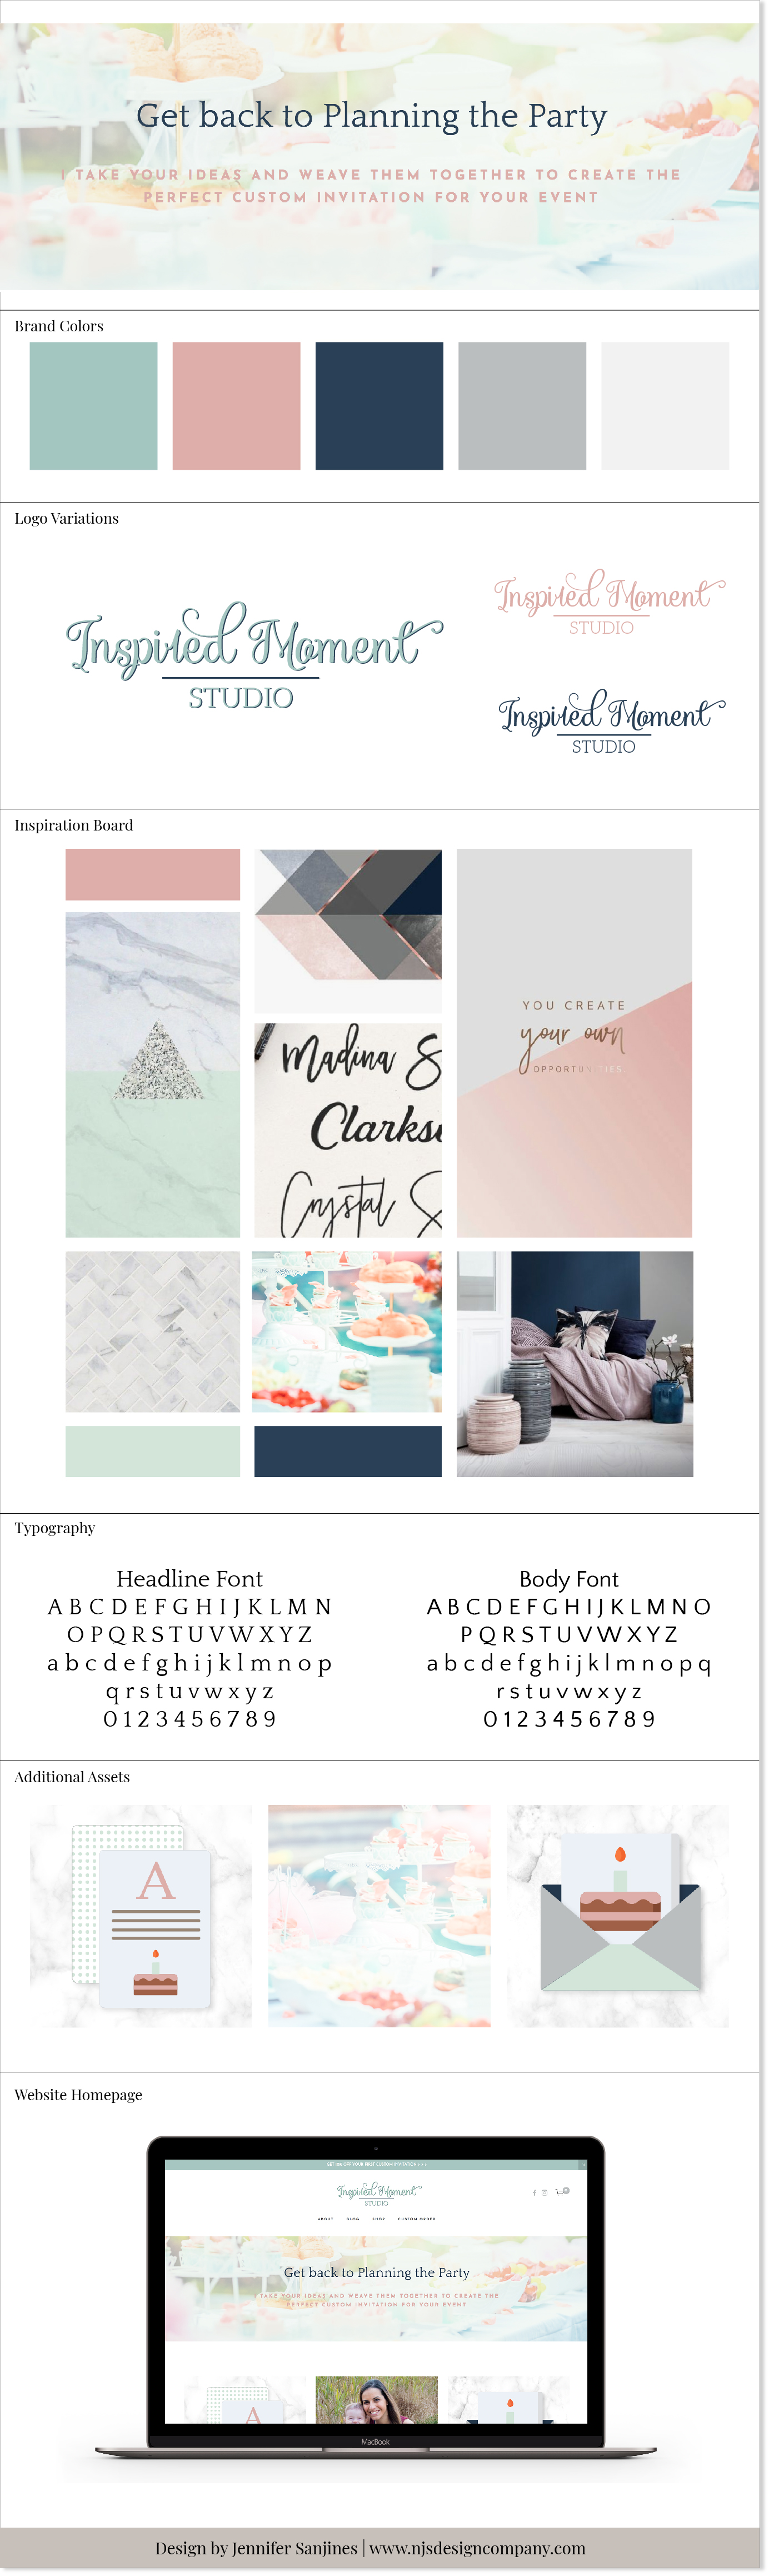 branding board mood board design for inspired moment studio by njs design company custom squarespace website designs for small handmade businesses